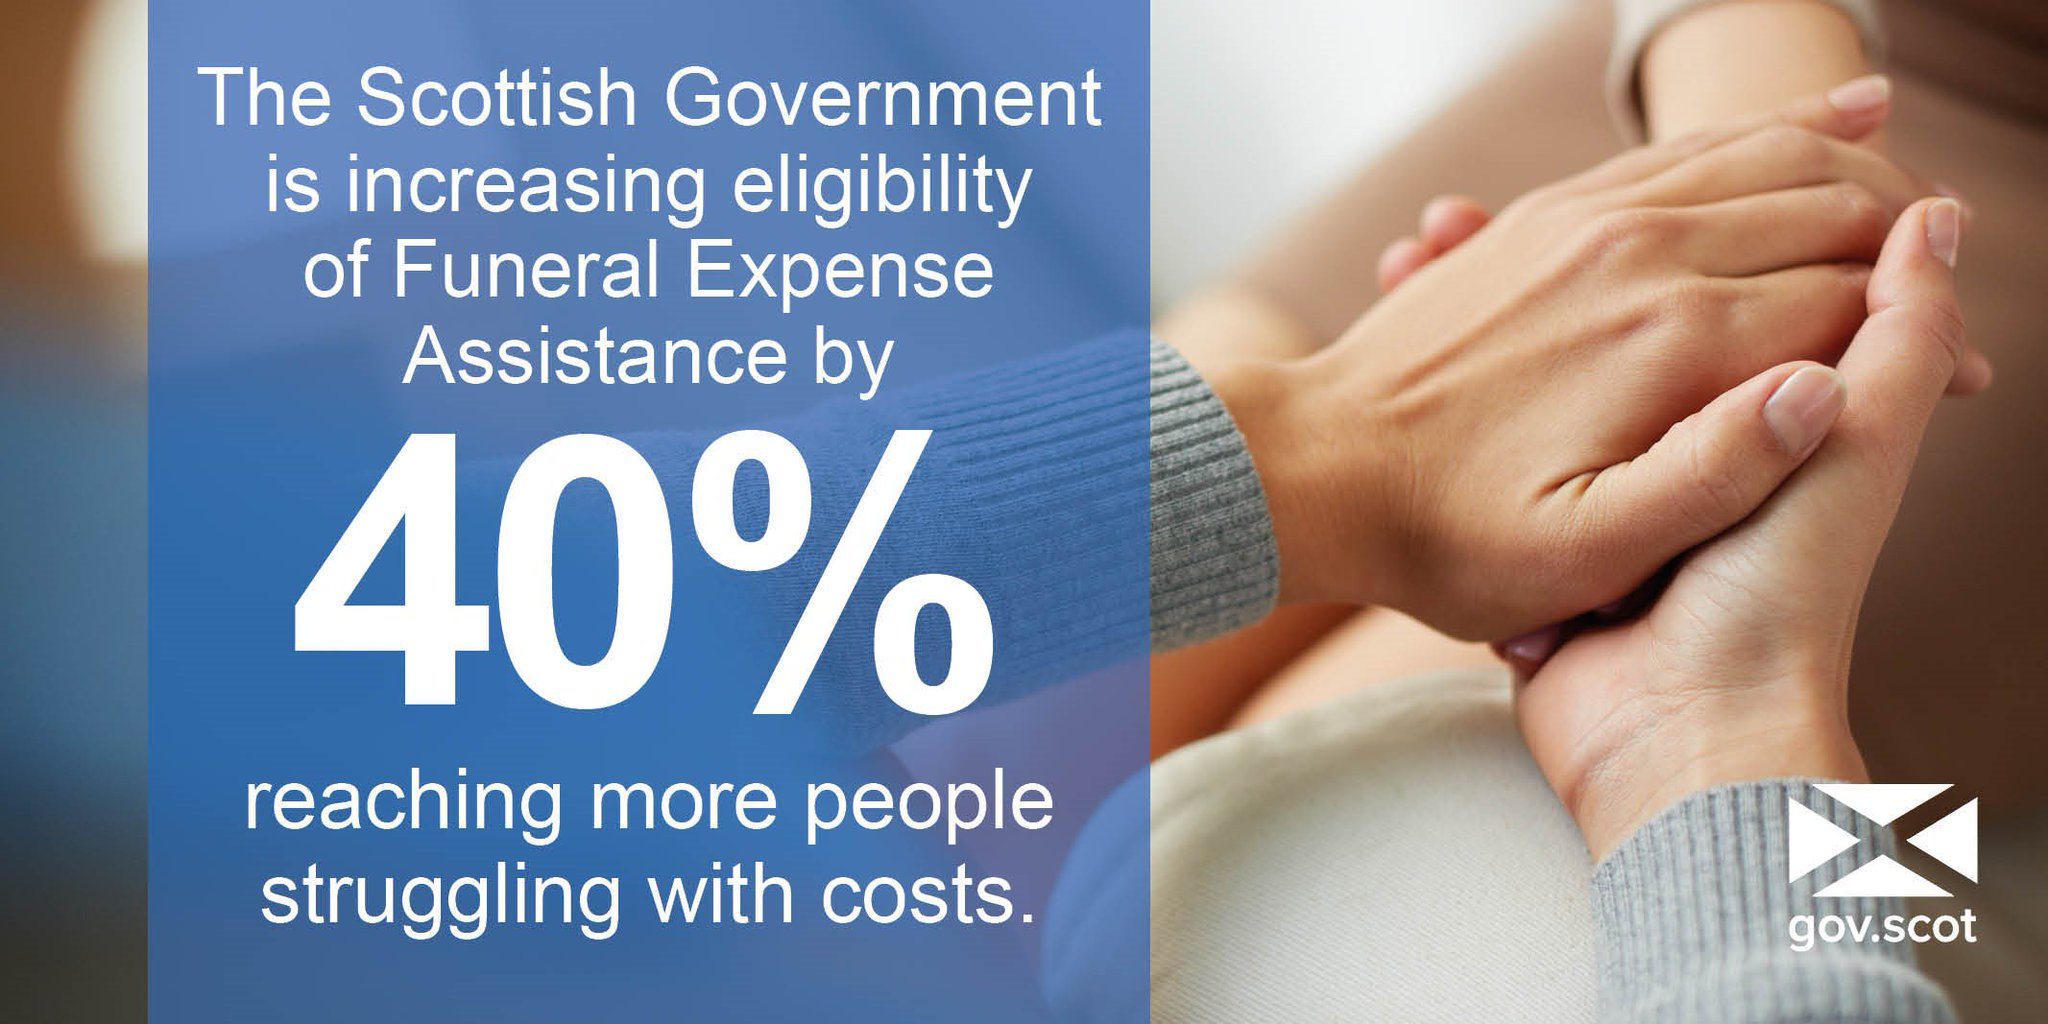 Tweet from Scottish government